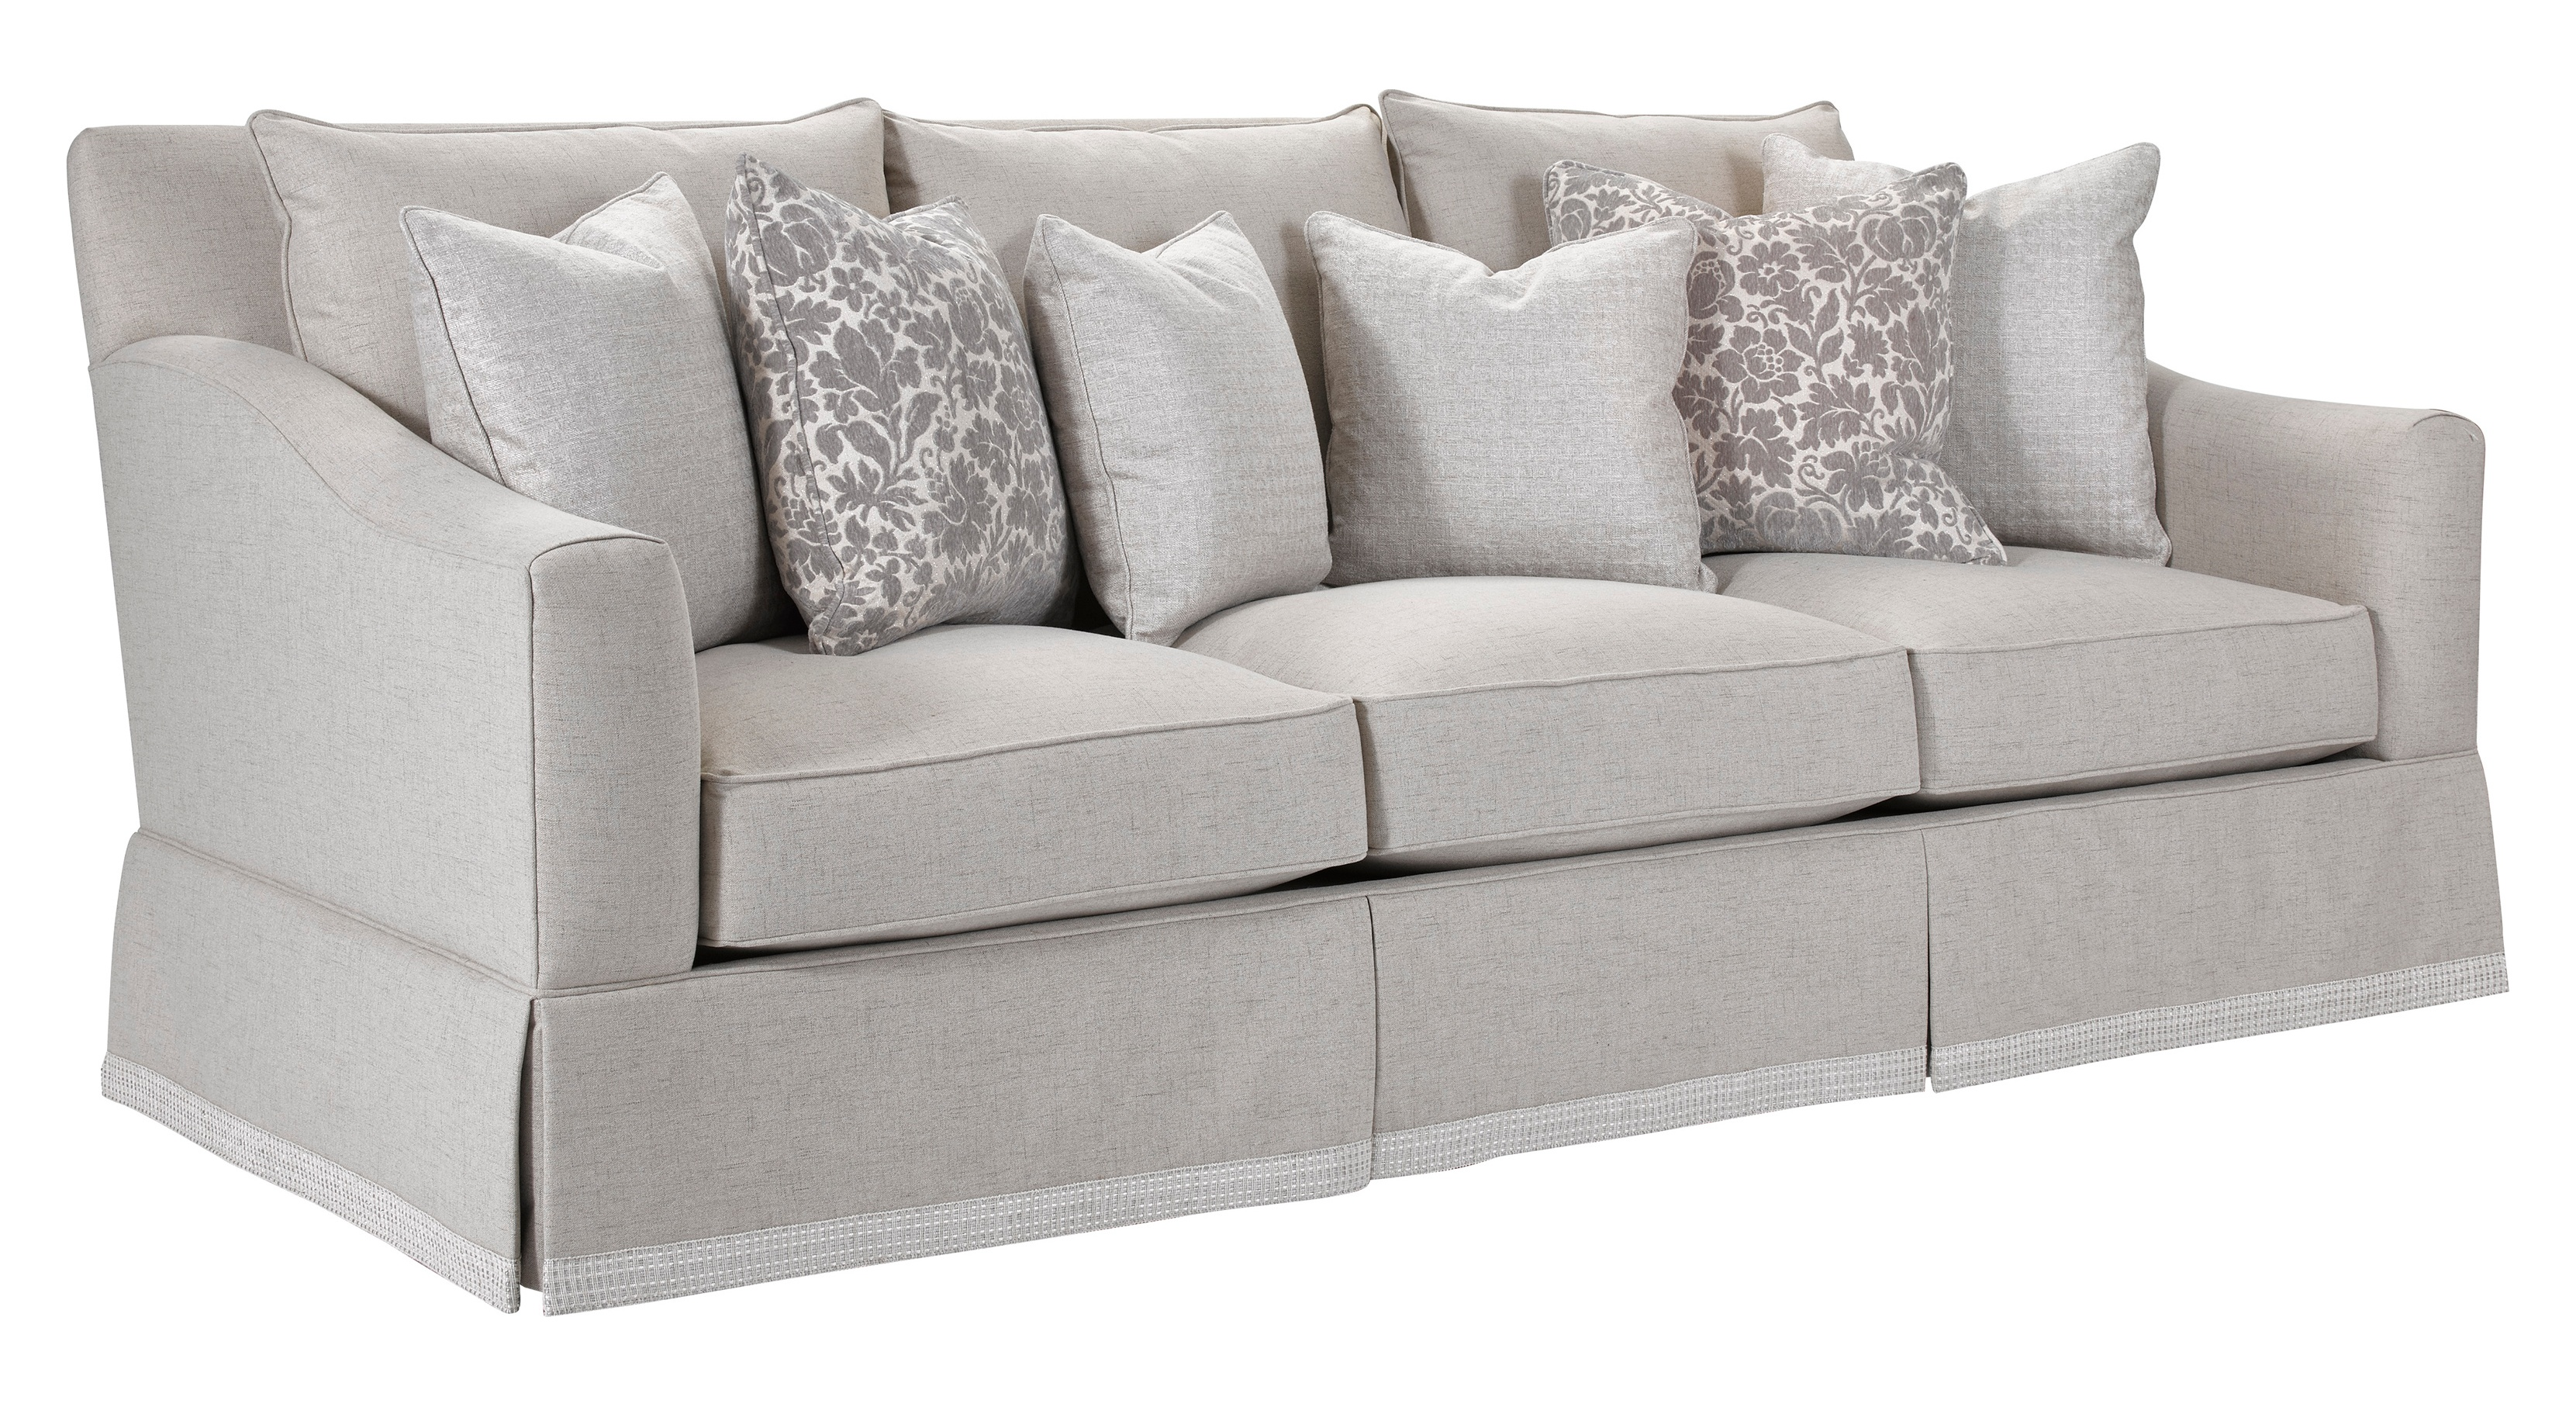 Sofa On Sale Regina Regina 4284 Sofa Collection Customize 350 Sofas And Sectionals